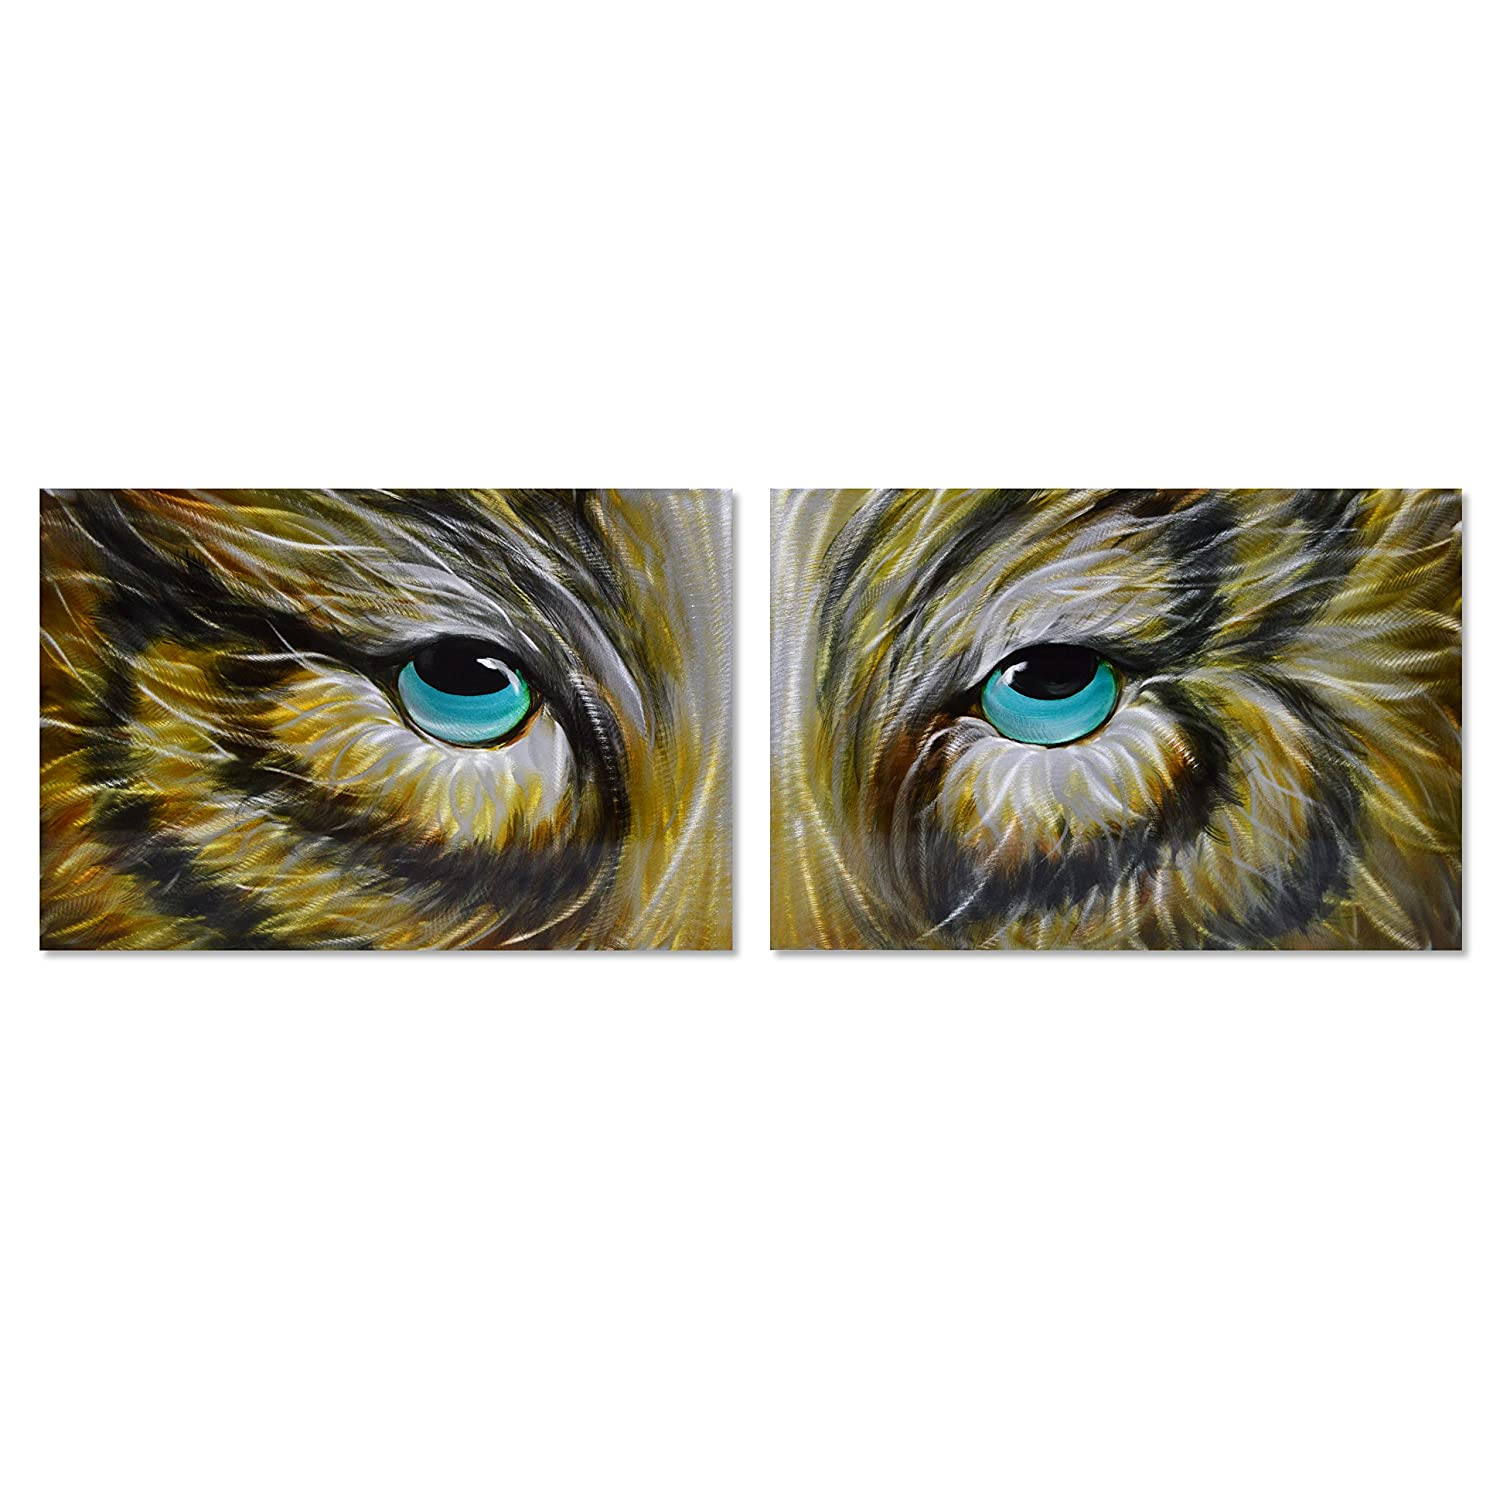 Amazon com silver fox modern wall art metal decor in 2 panels of 16 x 49 animal wall sculpture is the perfect decoration for living room or kitchen